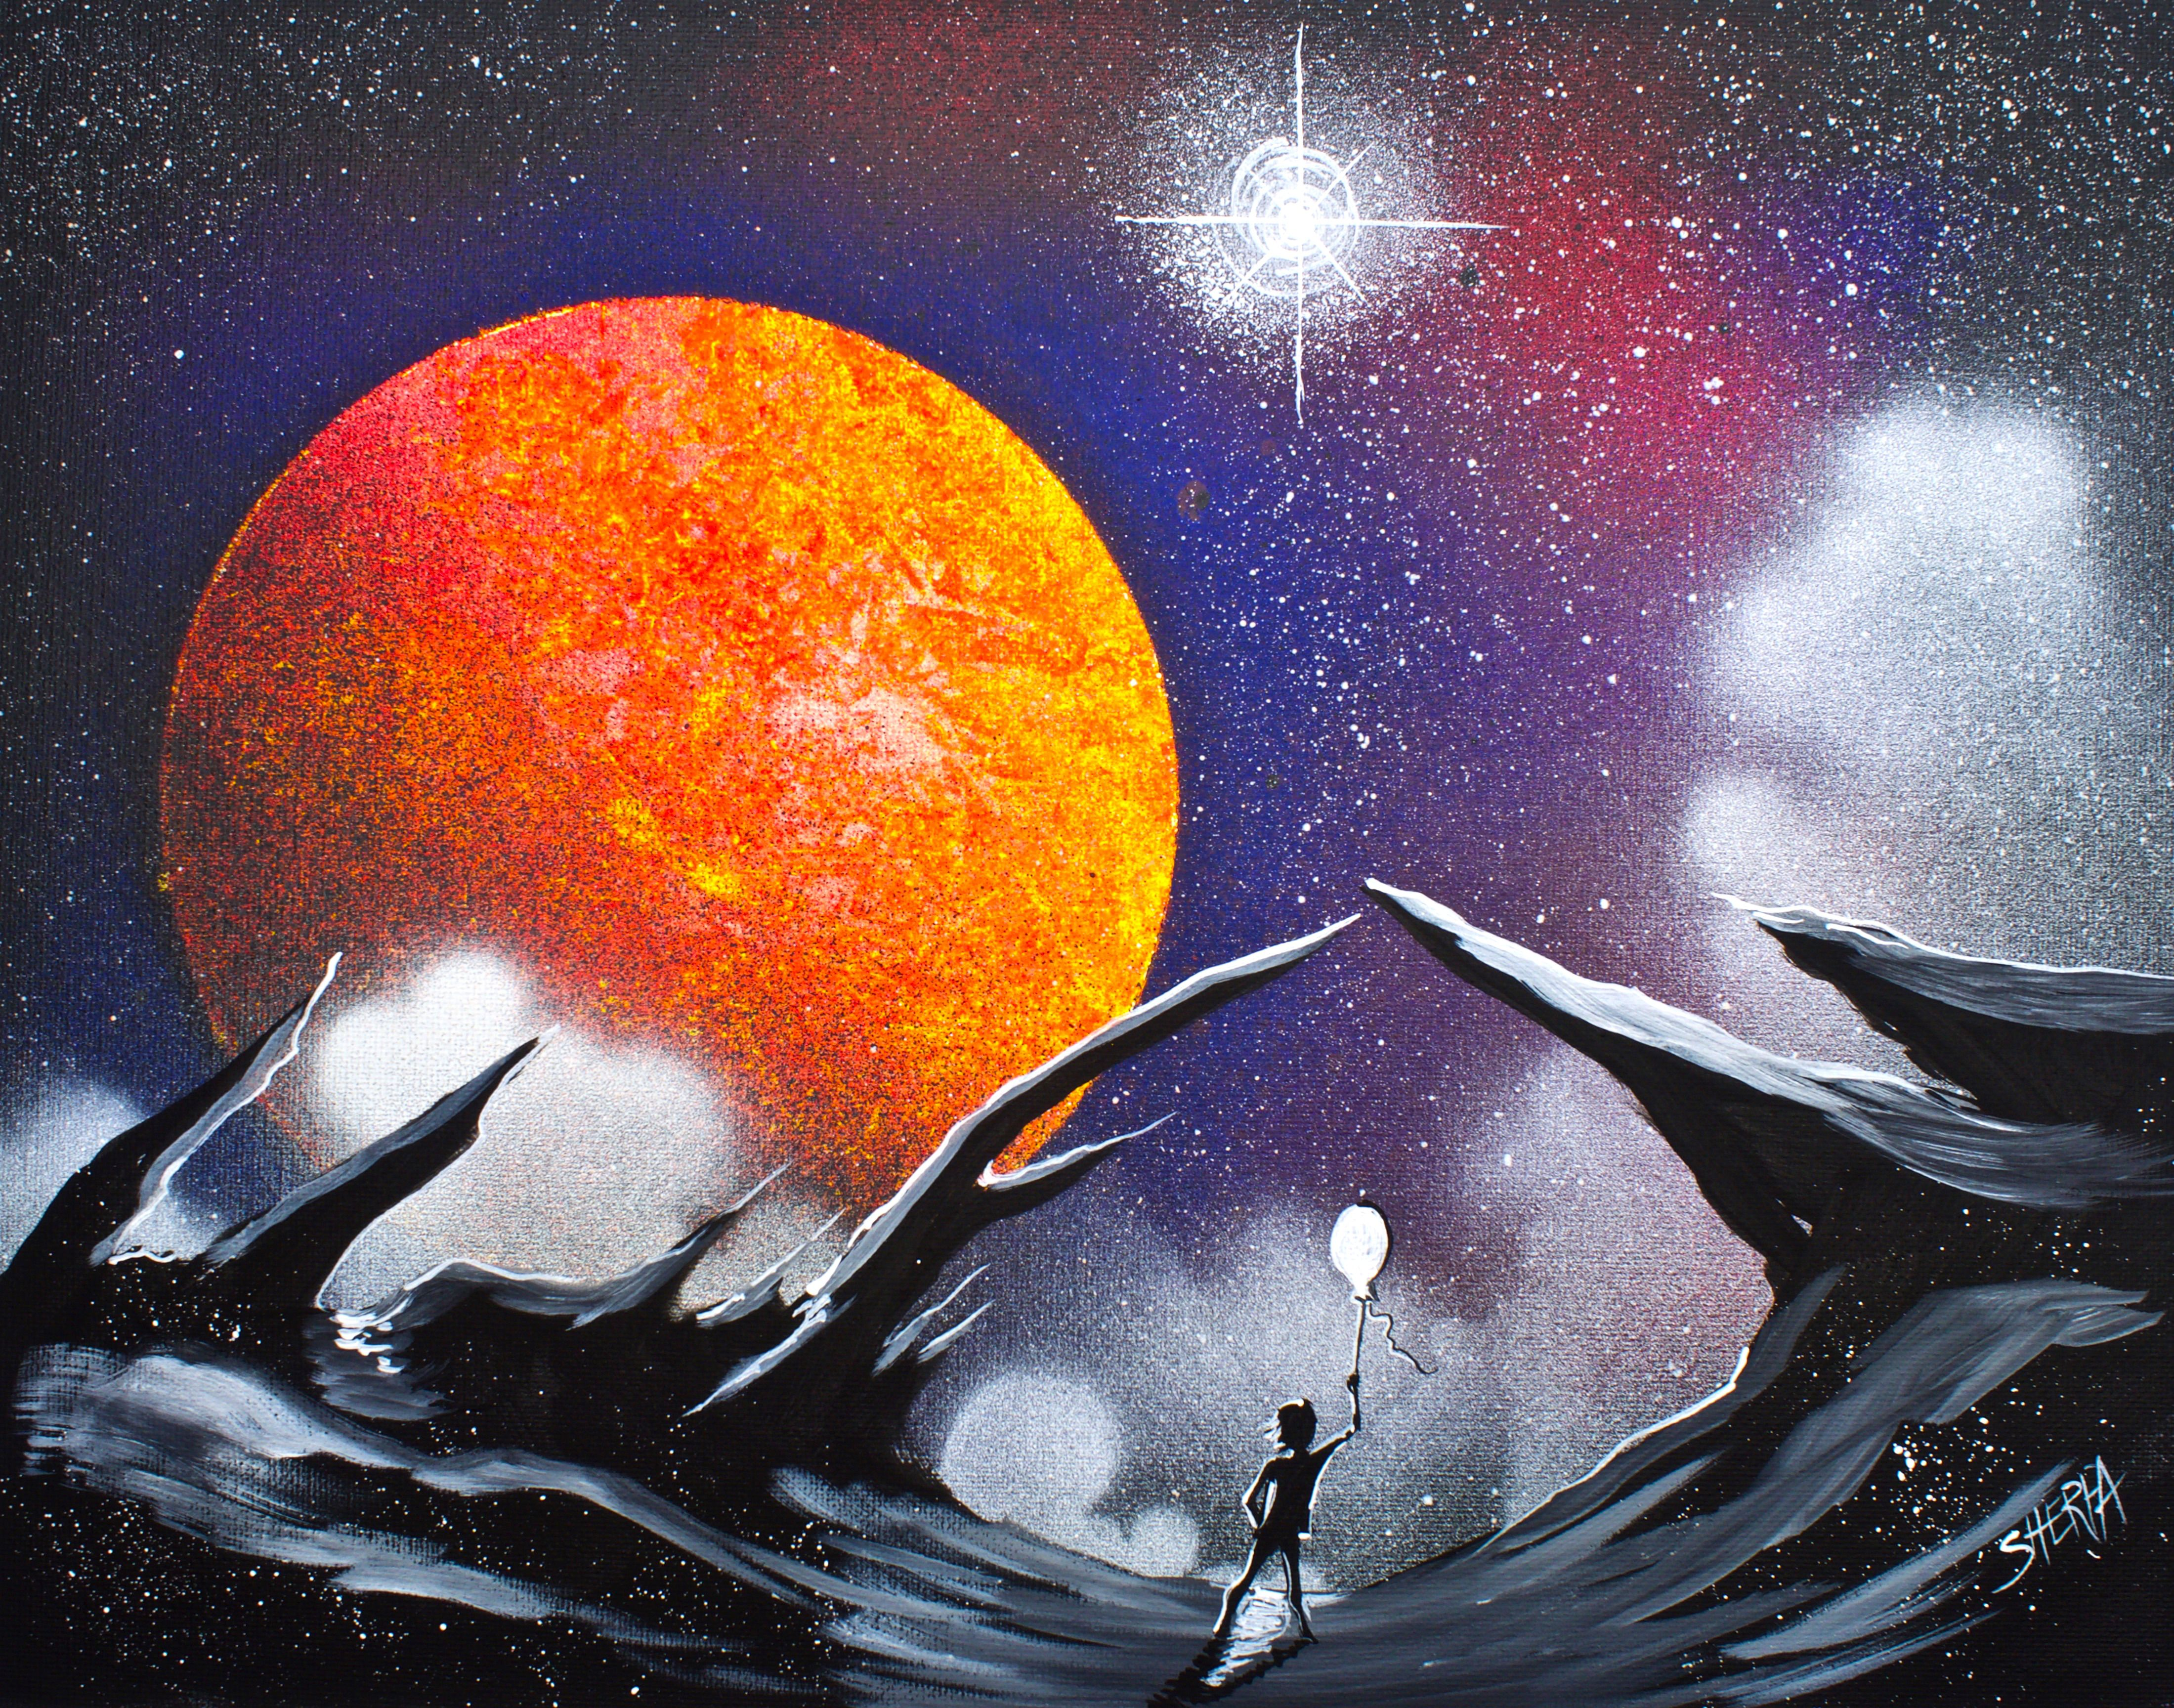 Galaxy Space scape acrylic painting for beginners step by ...